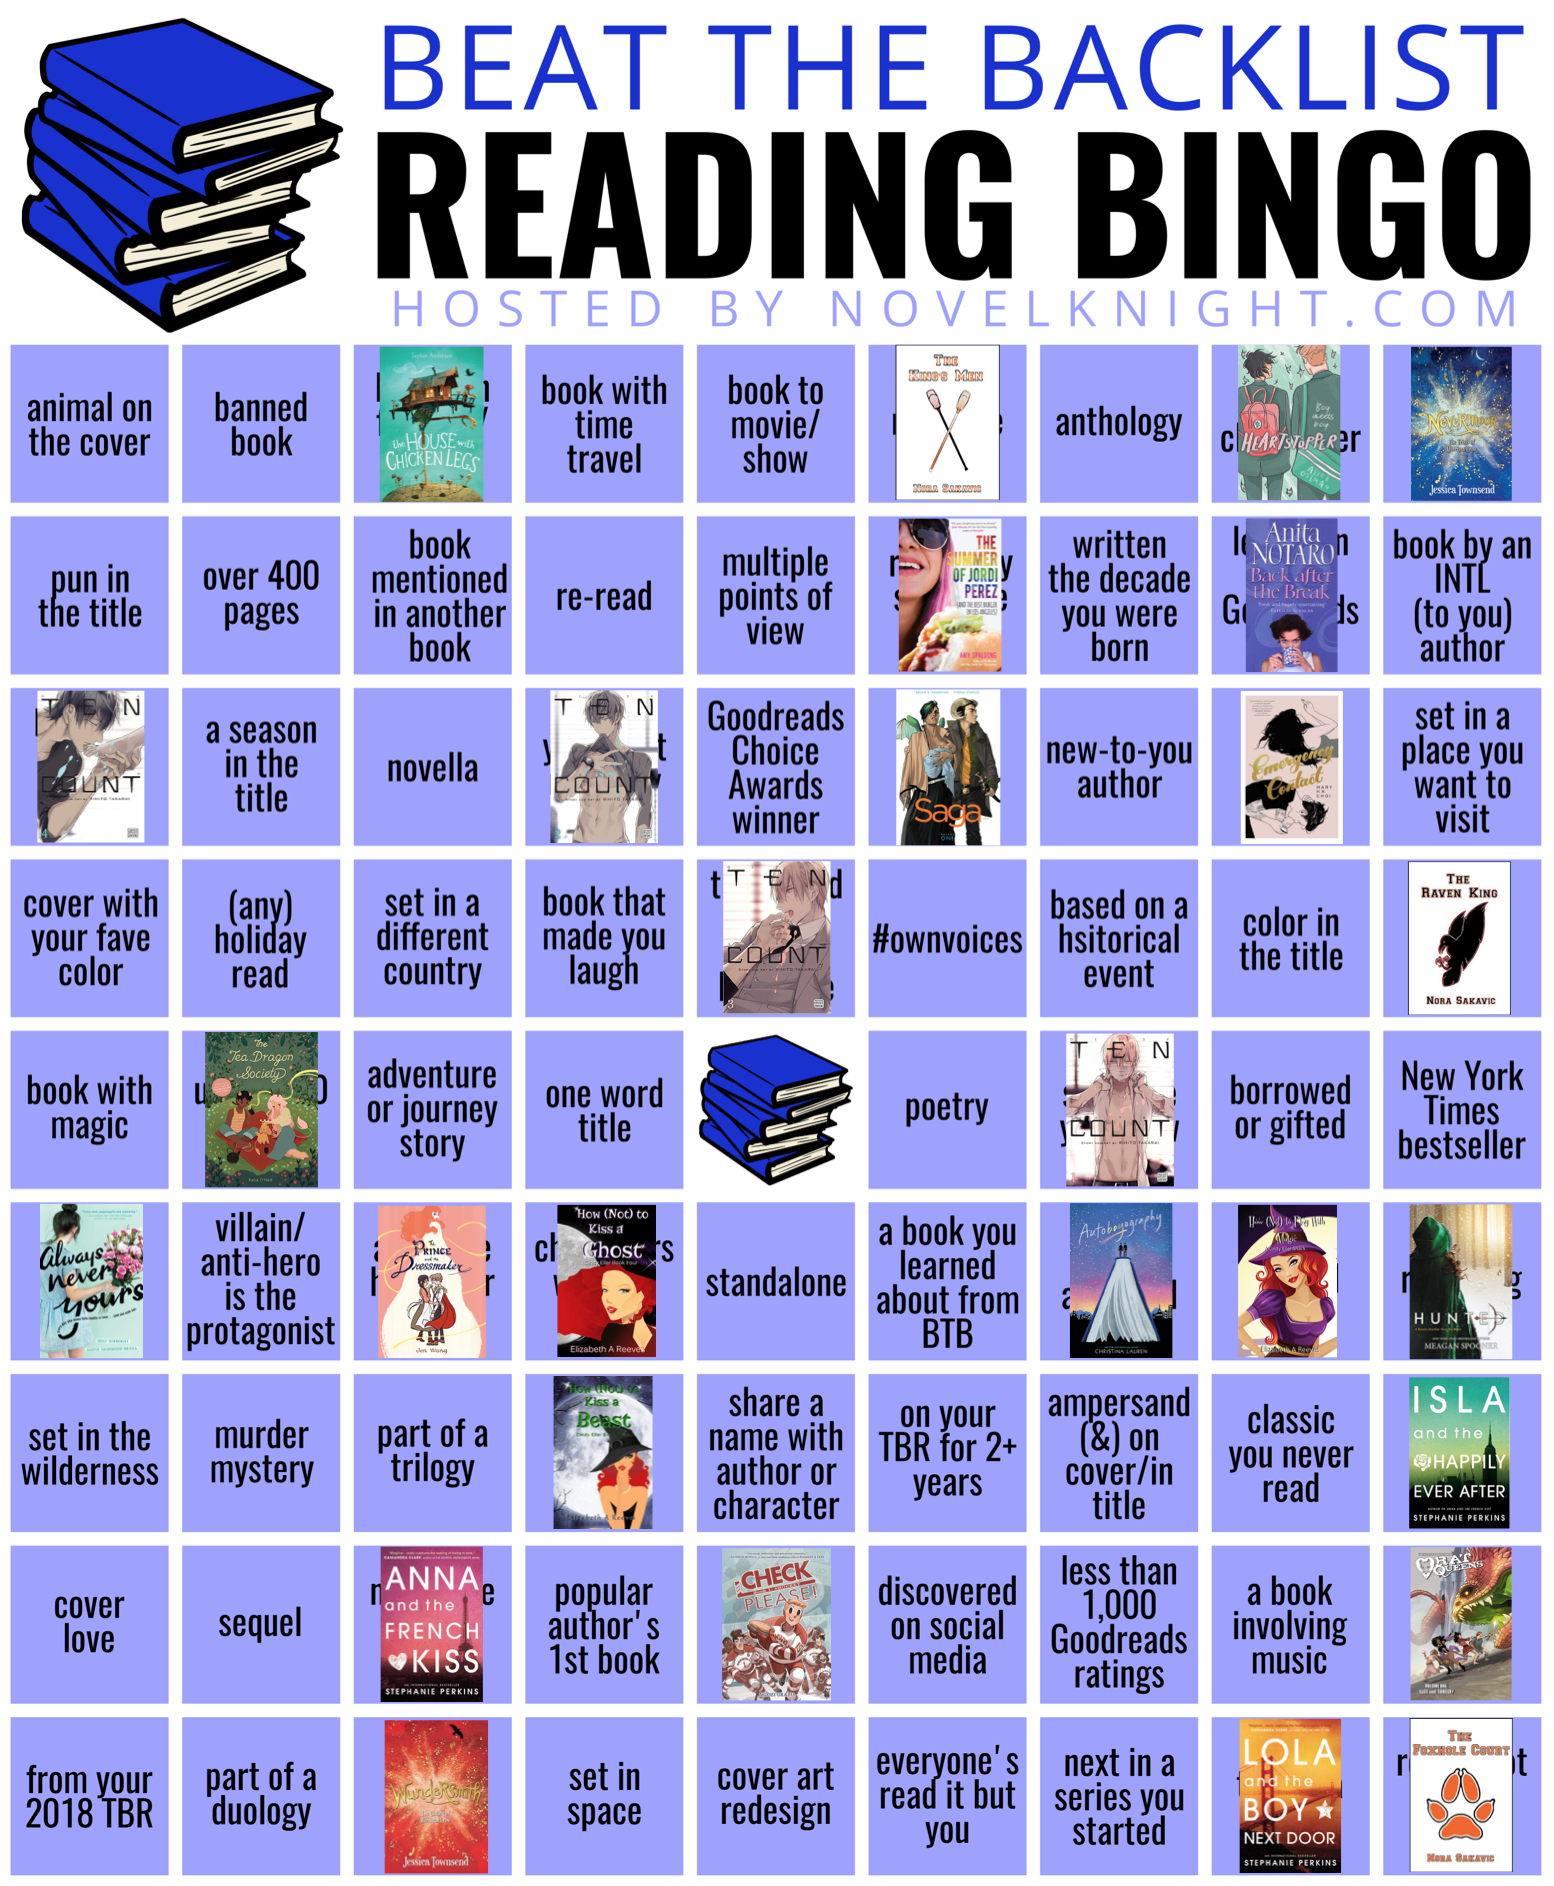 Beat the Backlist Epic Bingo March progress. 28 out of 81 squares marked complete.